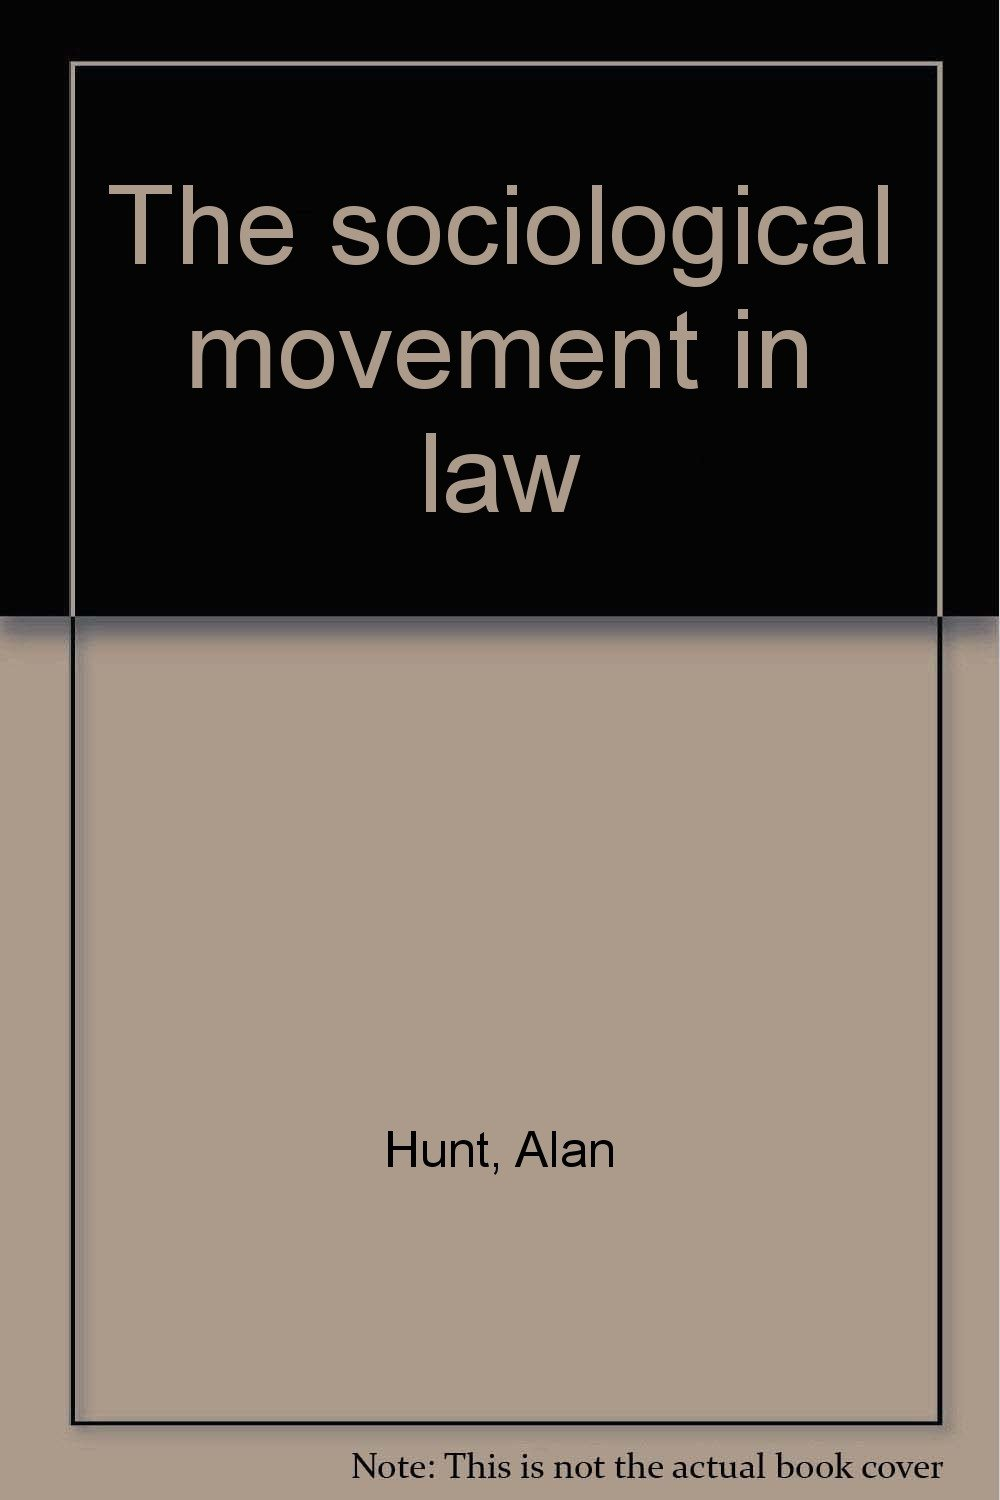 The Sociological Movement in Law